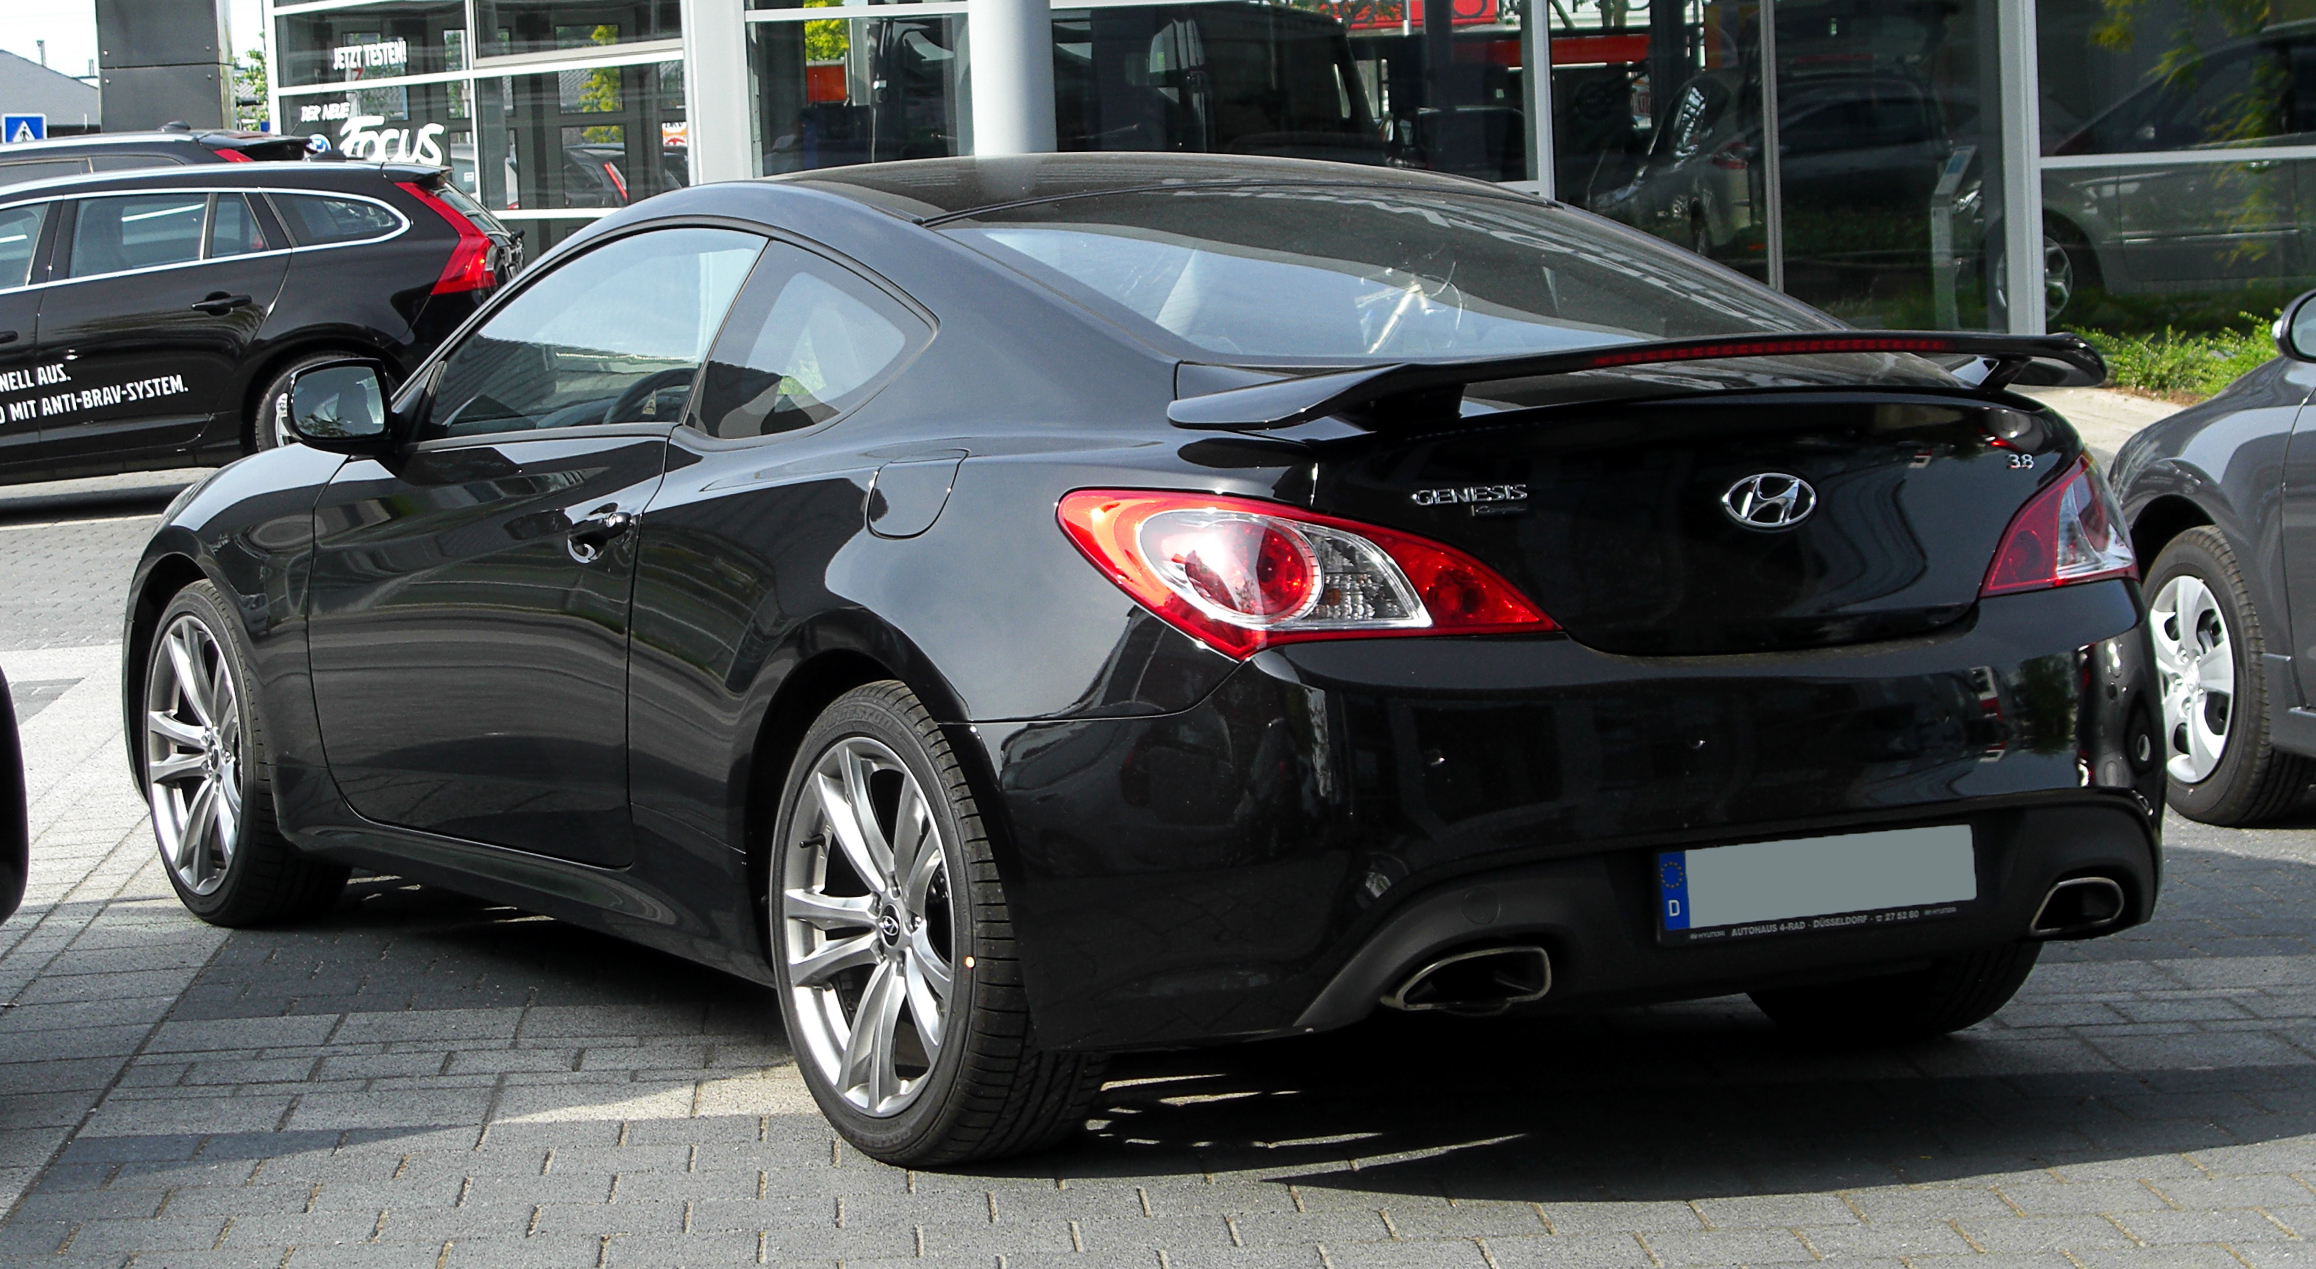 hyundai genesis coup 3 8 v6 heckansicht 7 mai 2011 d wikipedia. Black Bedroom Furniture Sets. Home Design Ideas